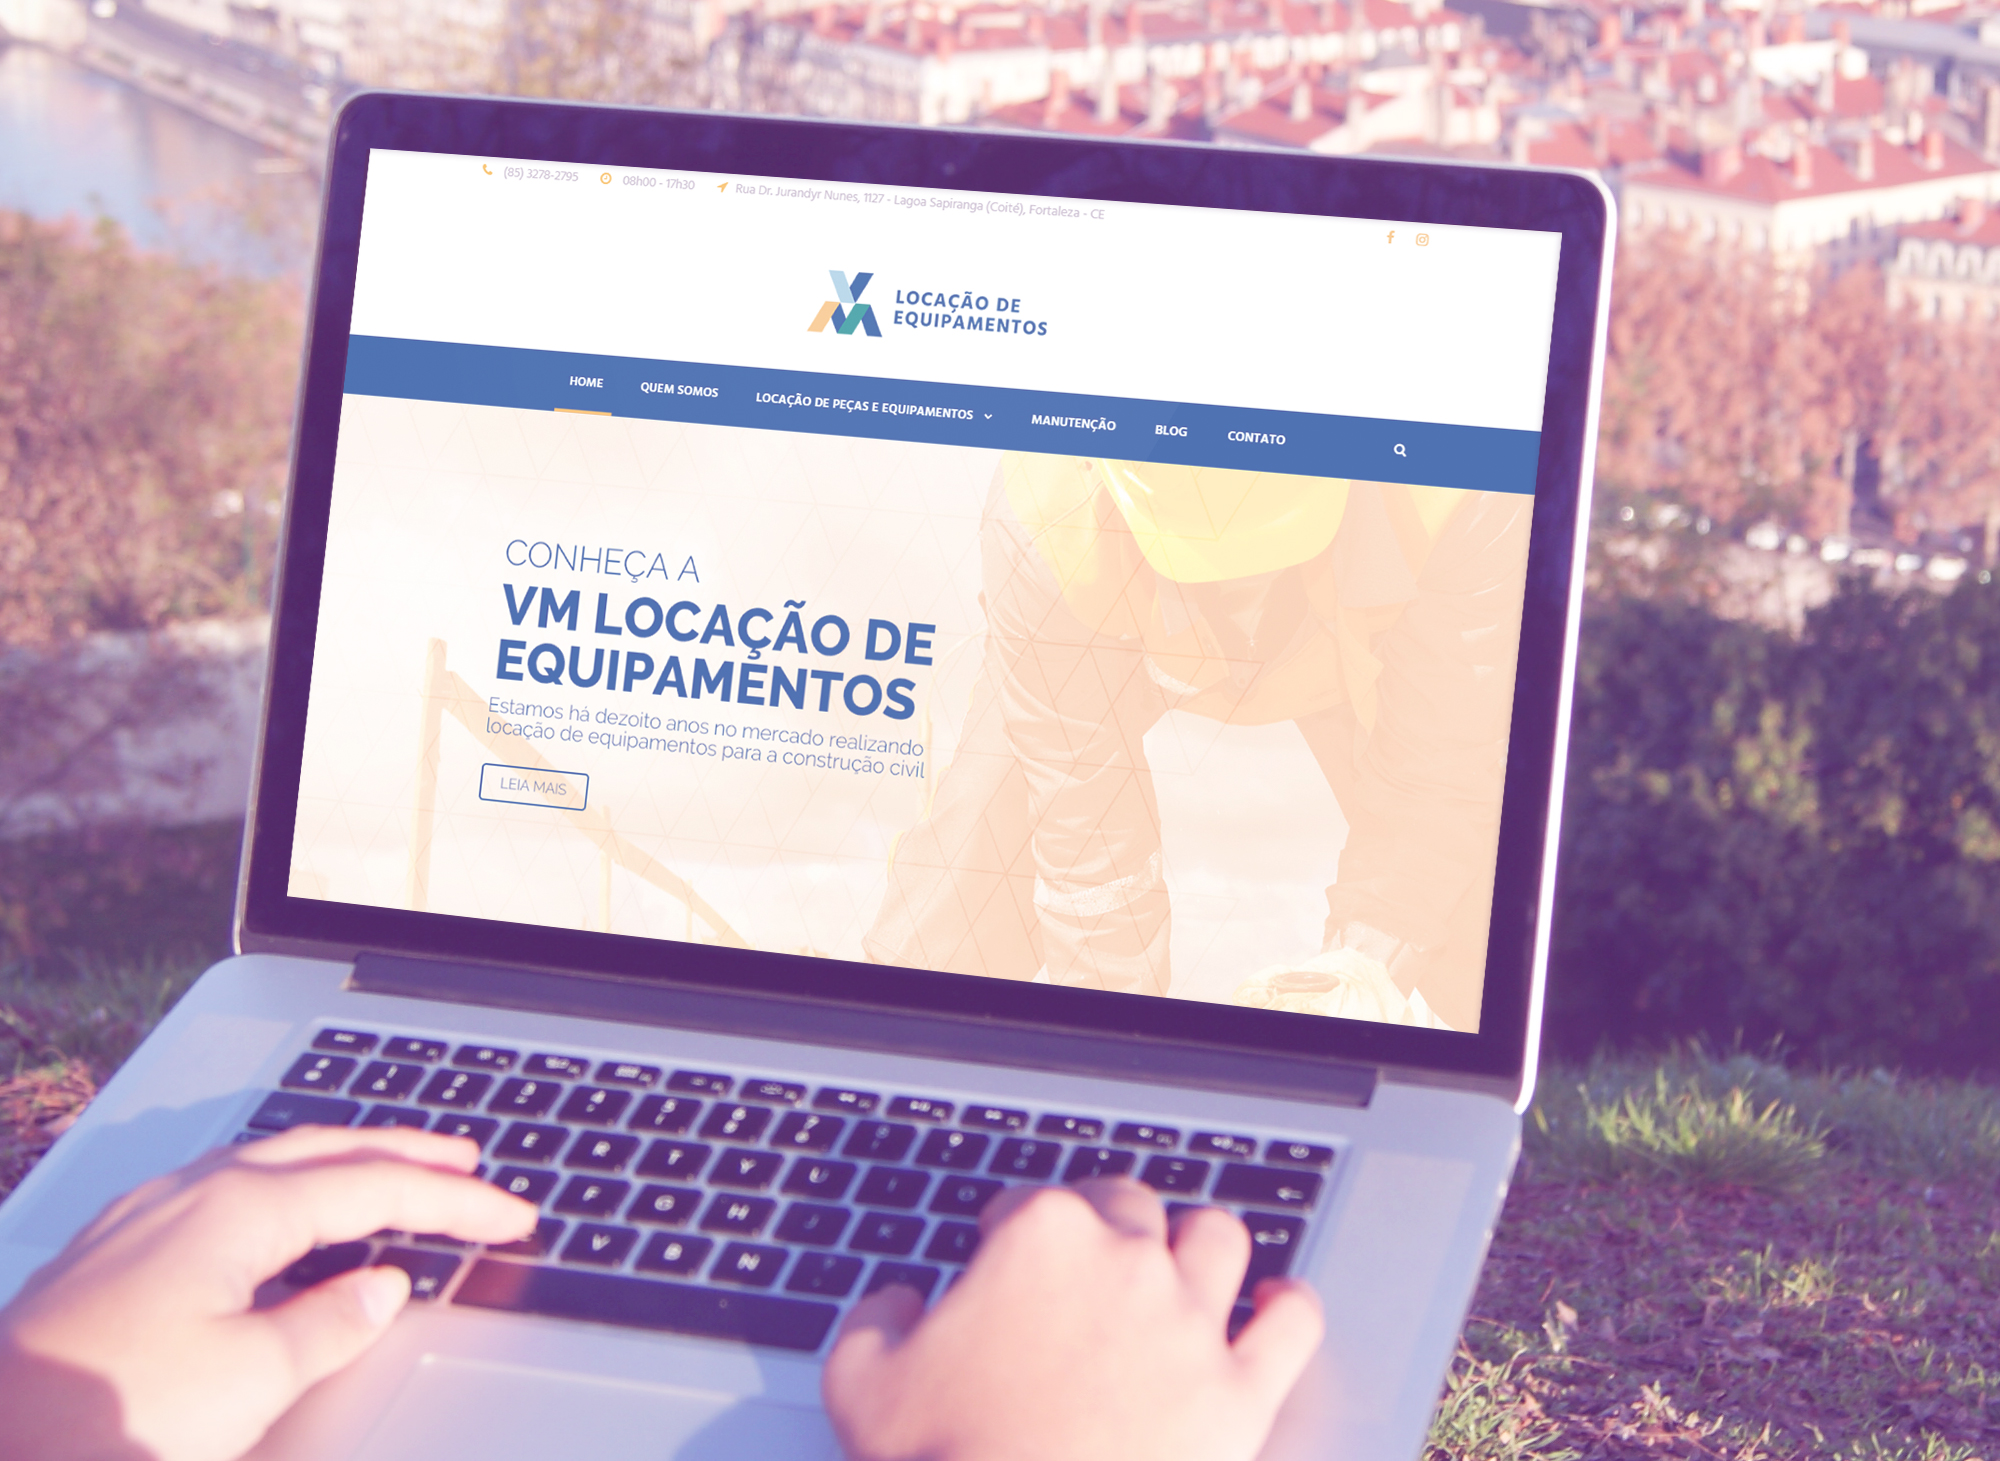 site-vm-locacao-de-equipamentos-portfolio-agencia-diretriz-digital-marketing-fortaleza1